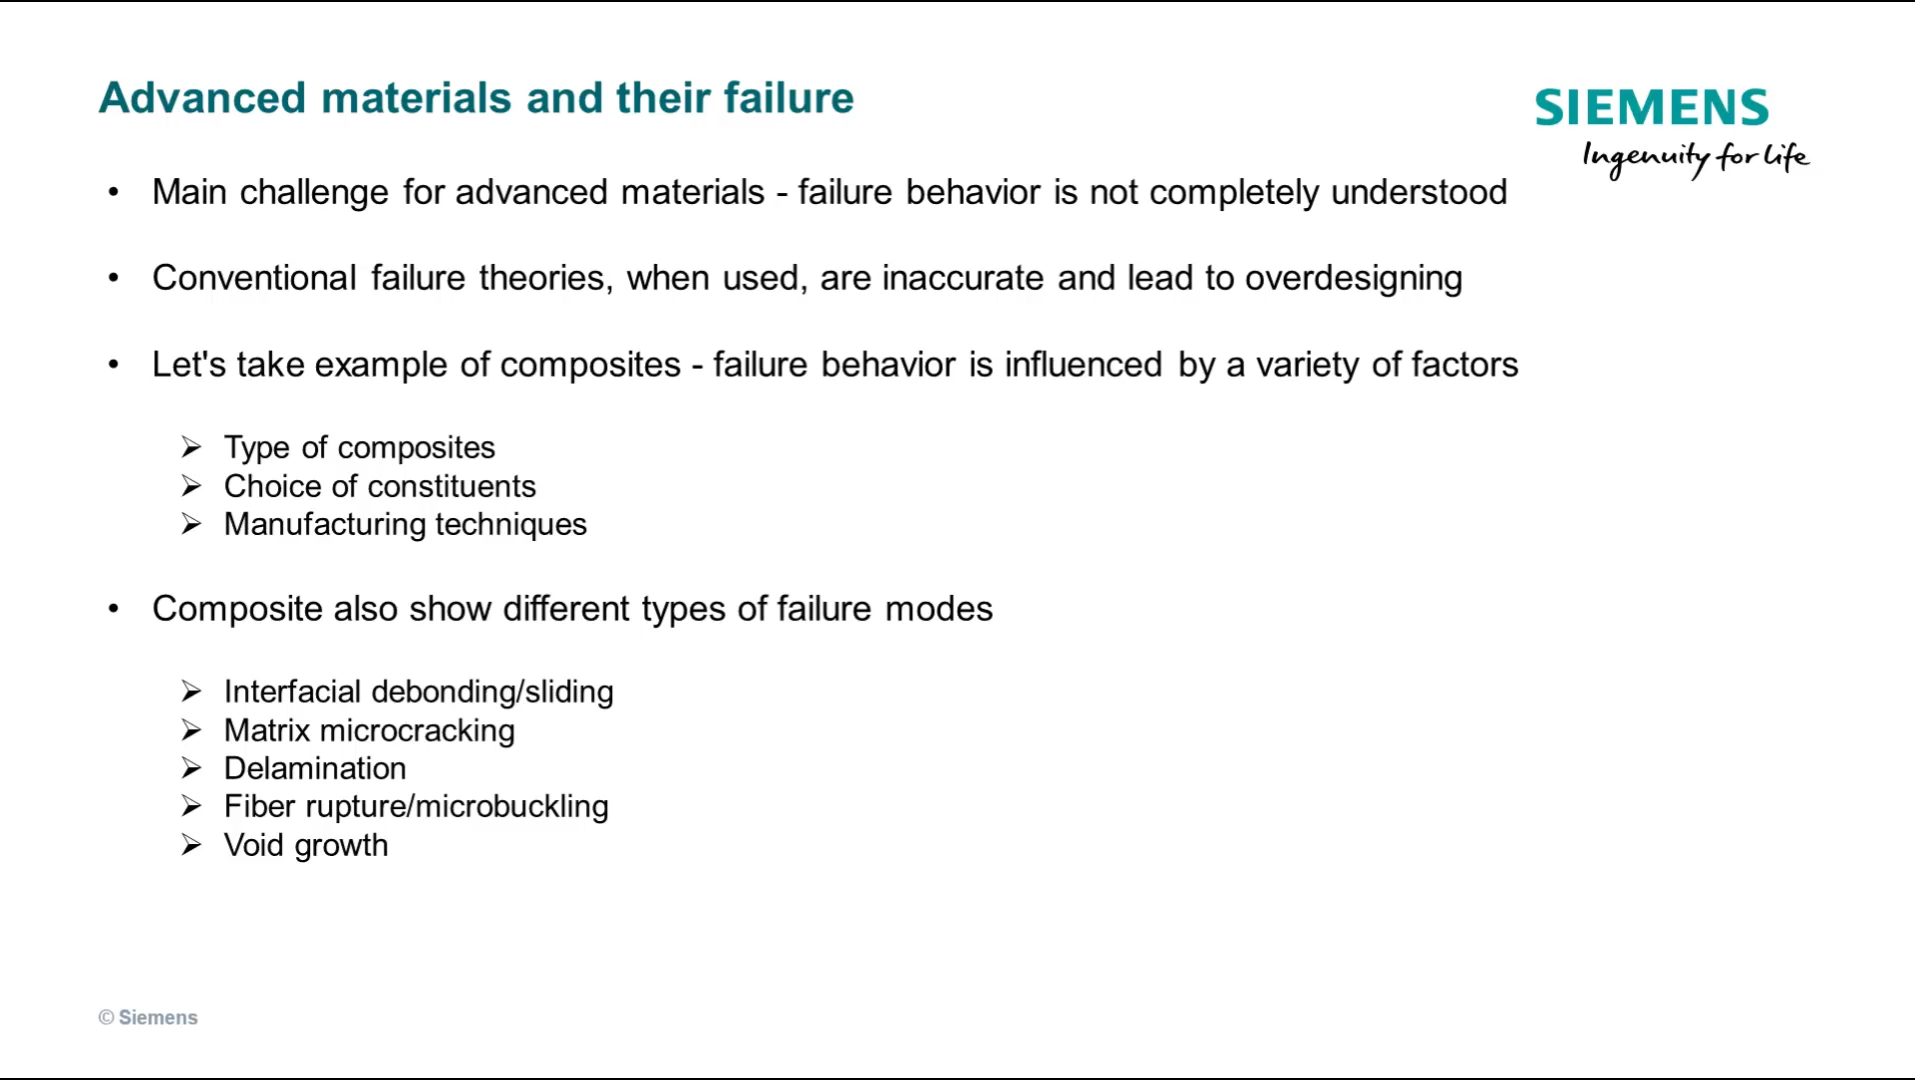 Advanced materials and their failure cover image